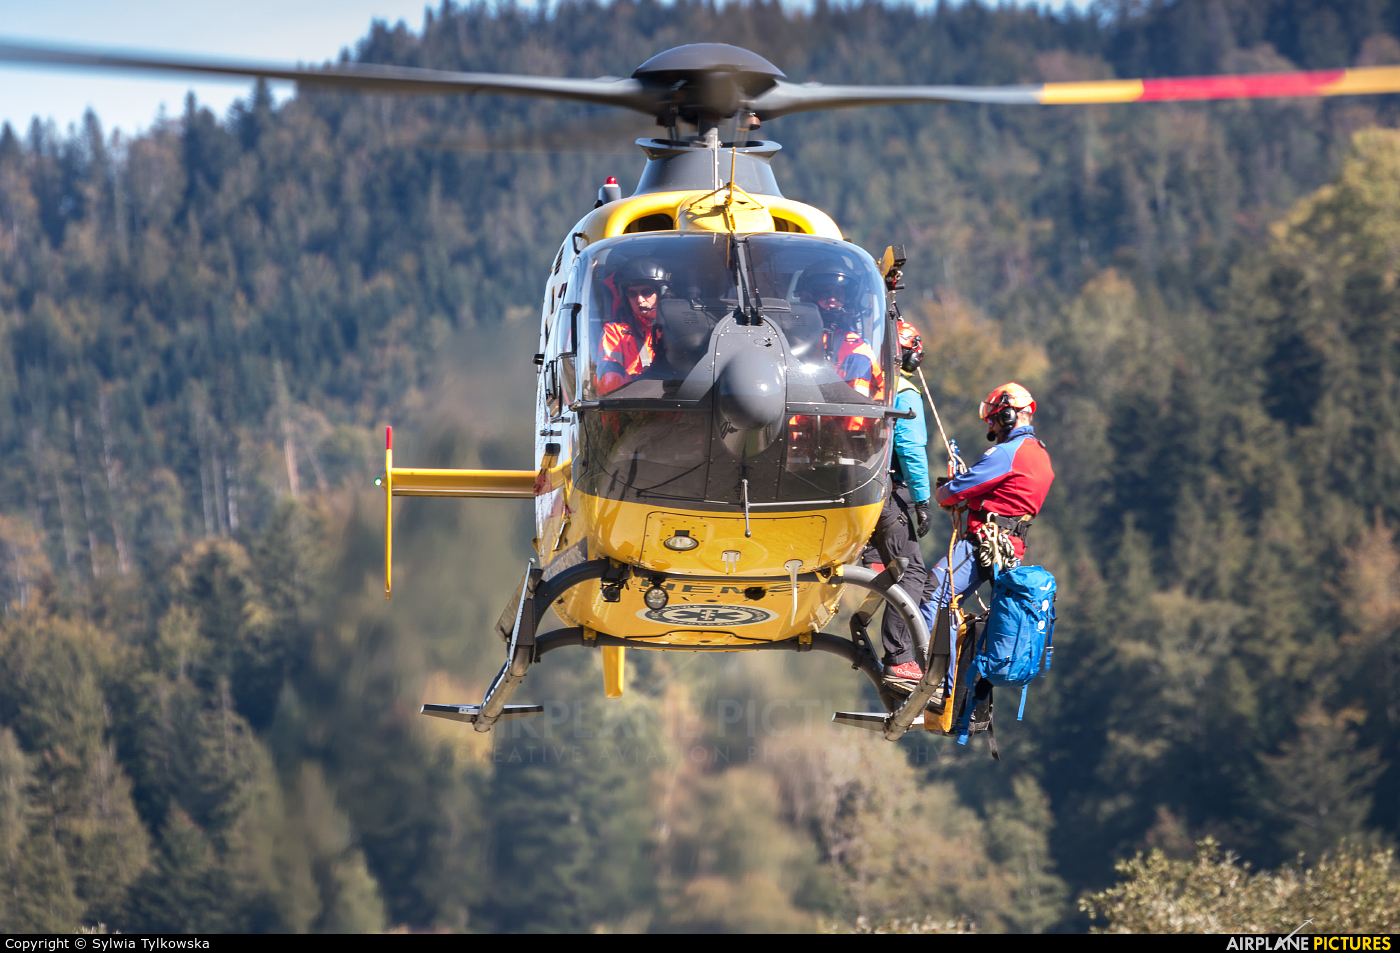 Polish Medical Air Rescue - Lotnicze Pogotowie Ratunkowe SP-HXX aircraft at Off Airport - Poland